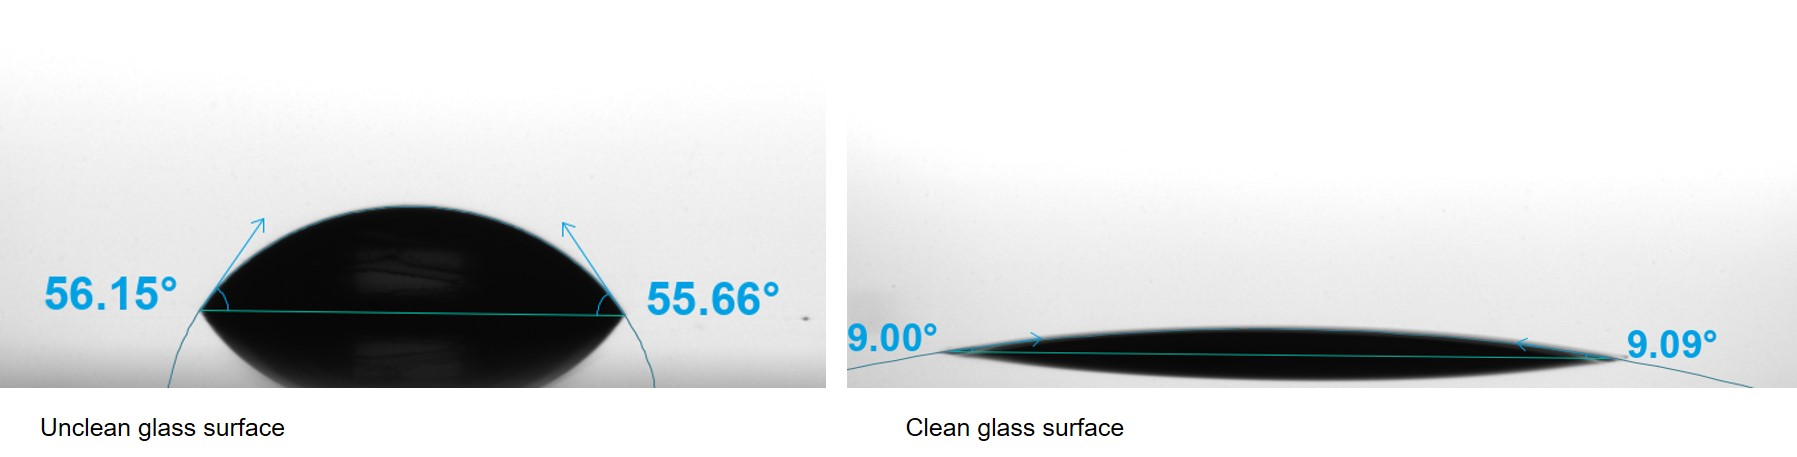 Clean and unclean glass